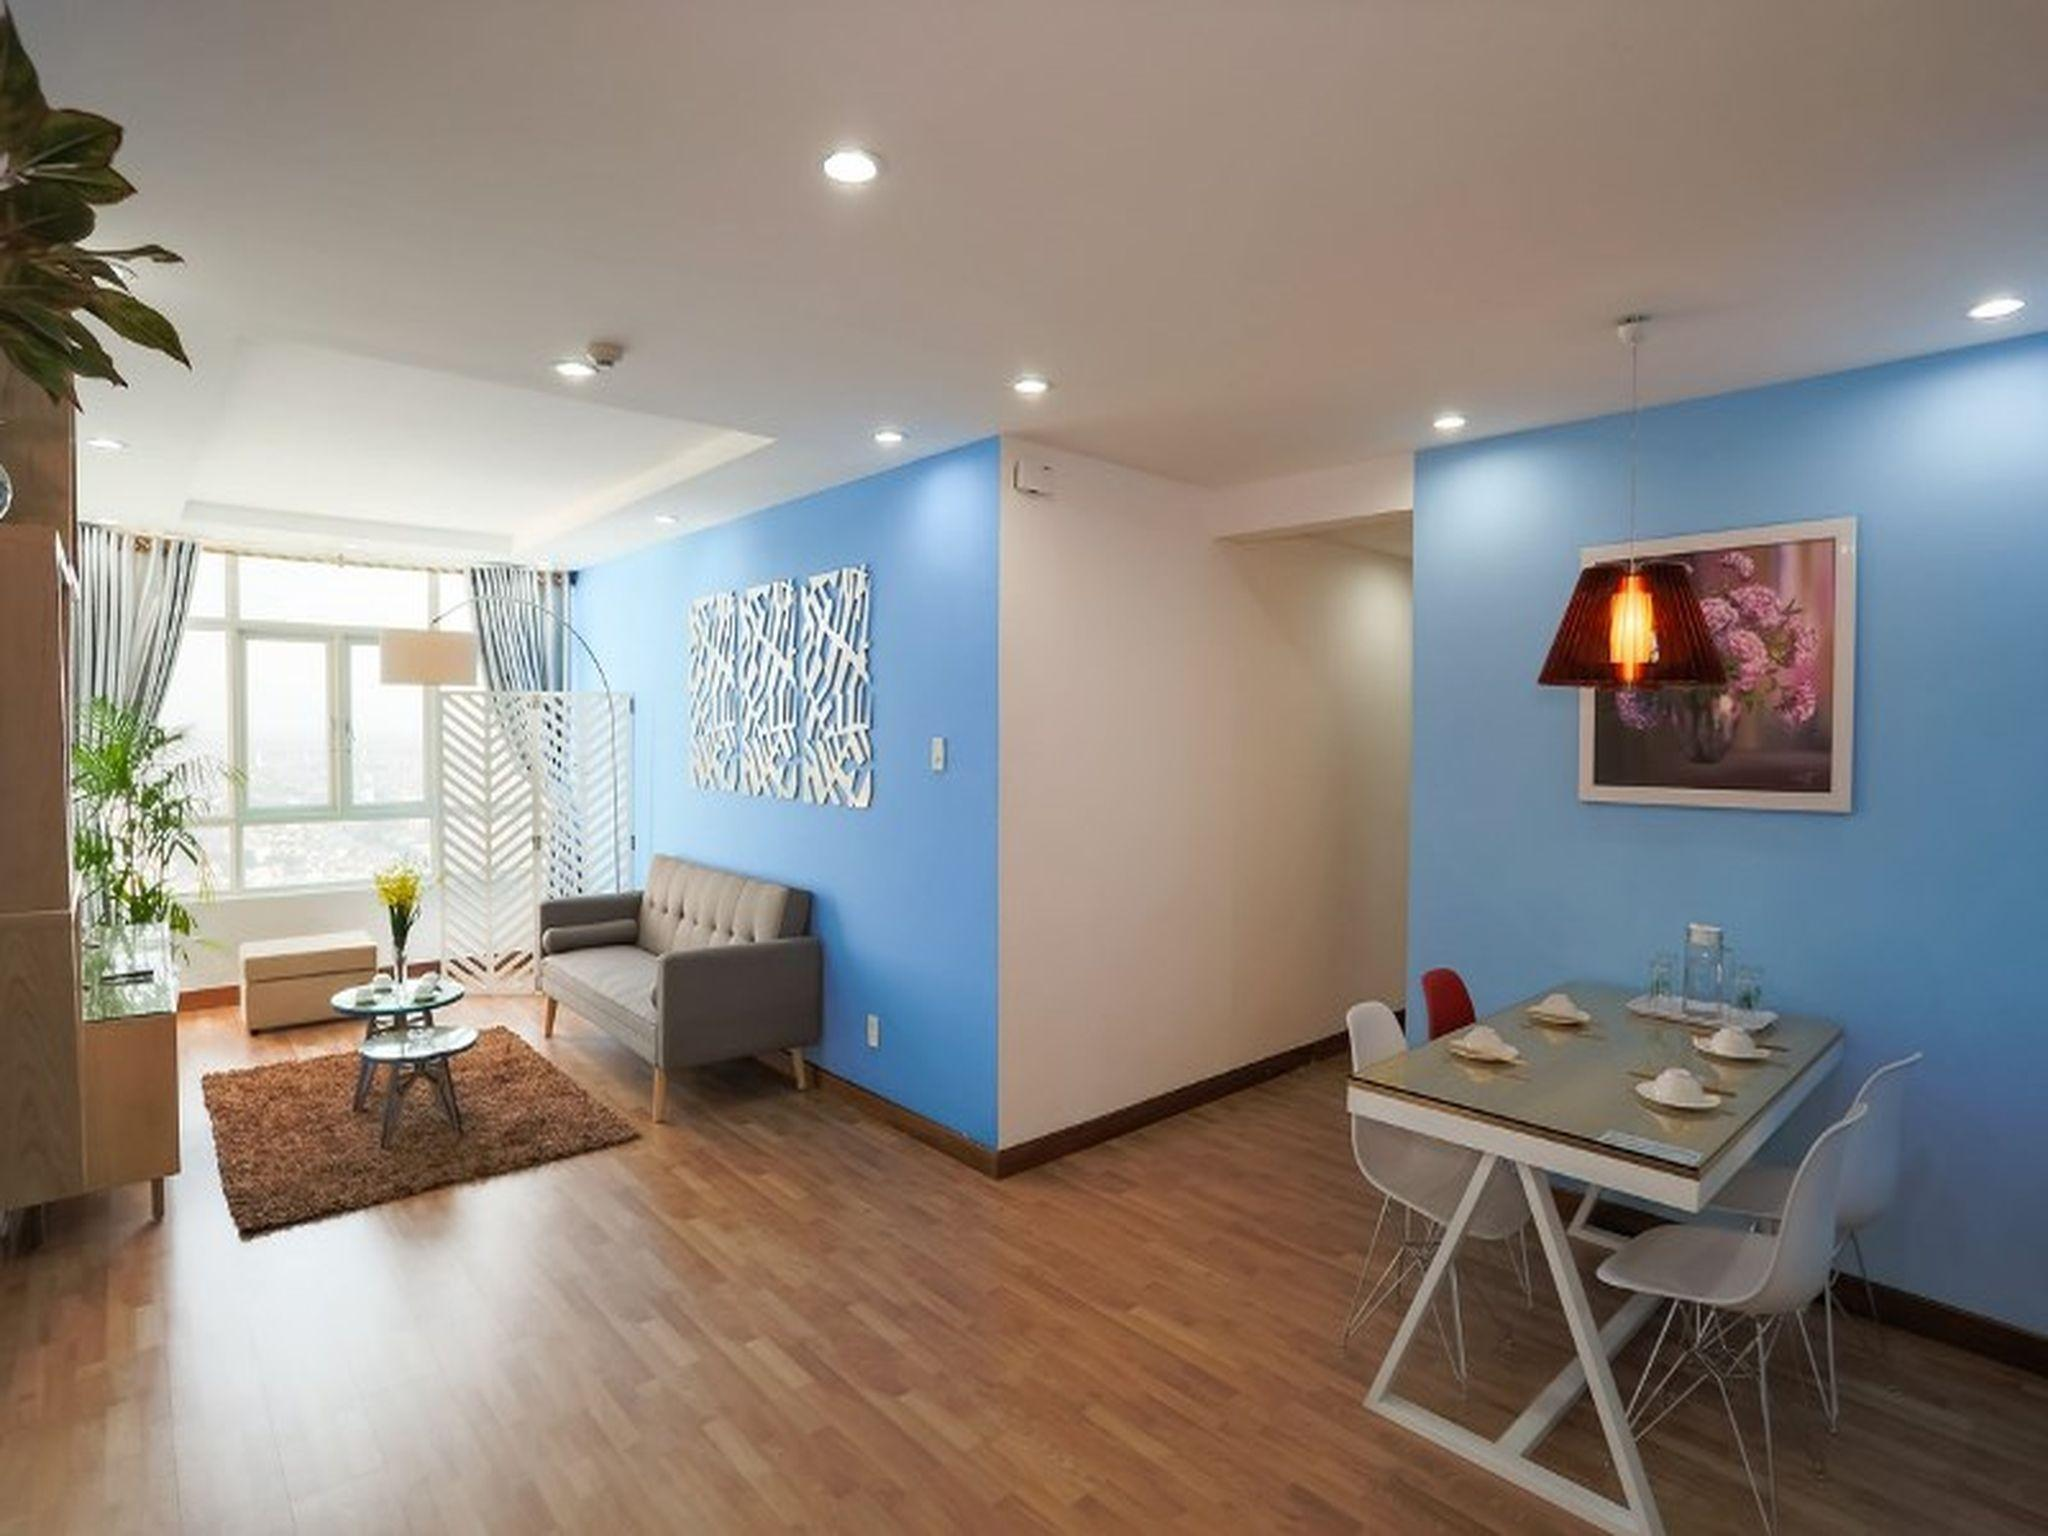 2 Bedroom  Hoang Anh Gia Lai Apartment 2